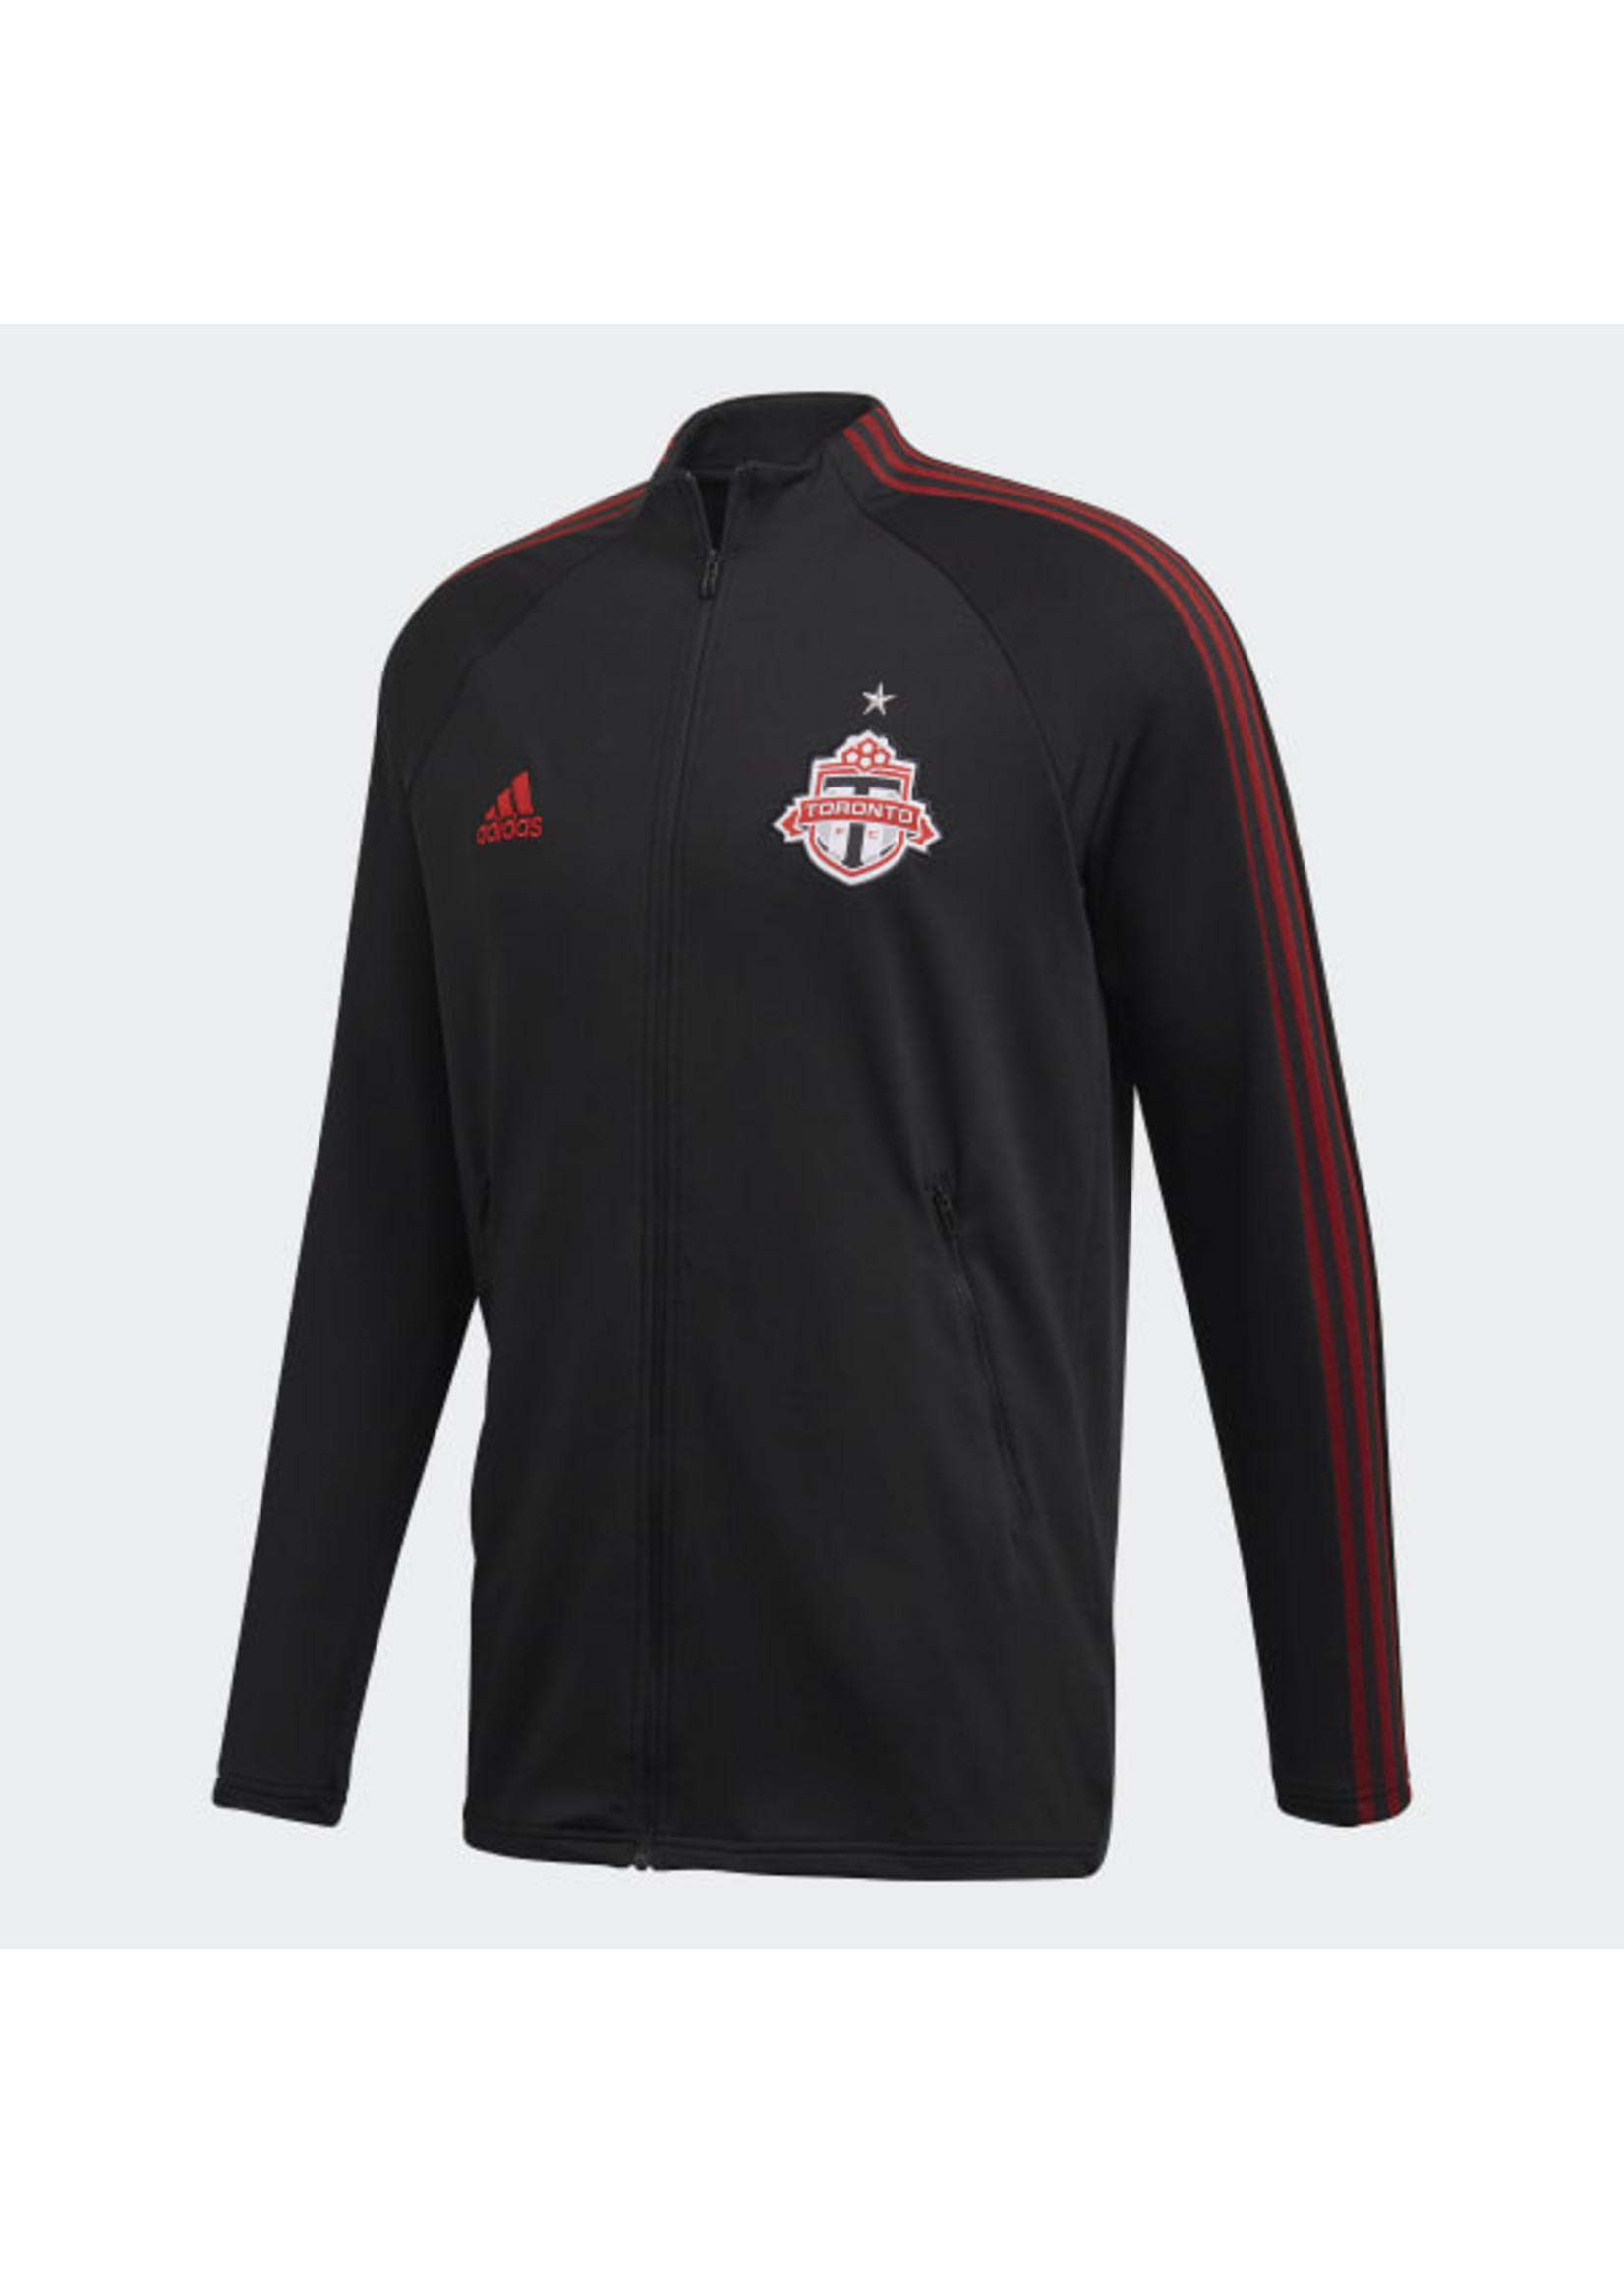 Adidas Toronto Track Jacket Full Zip - Black/Red